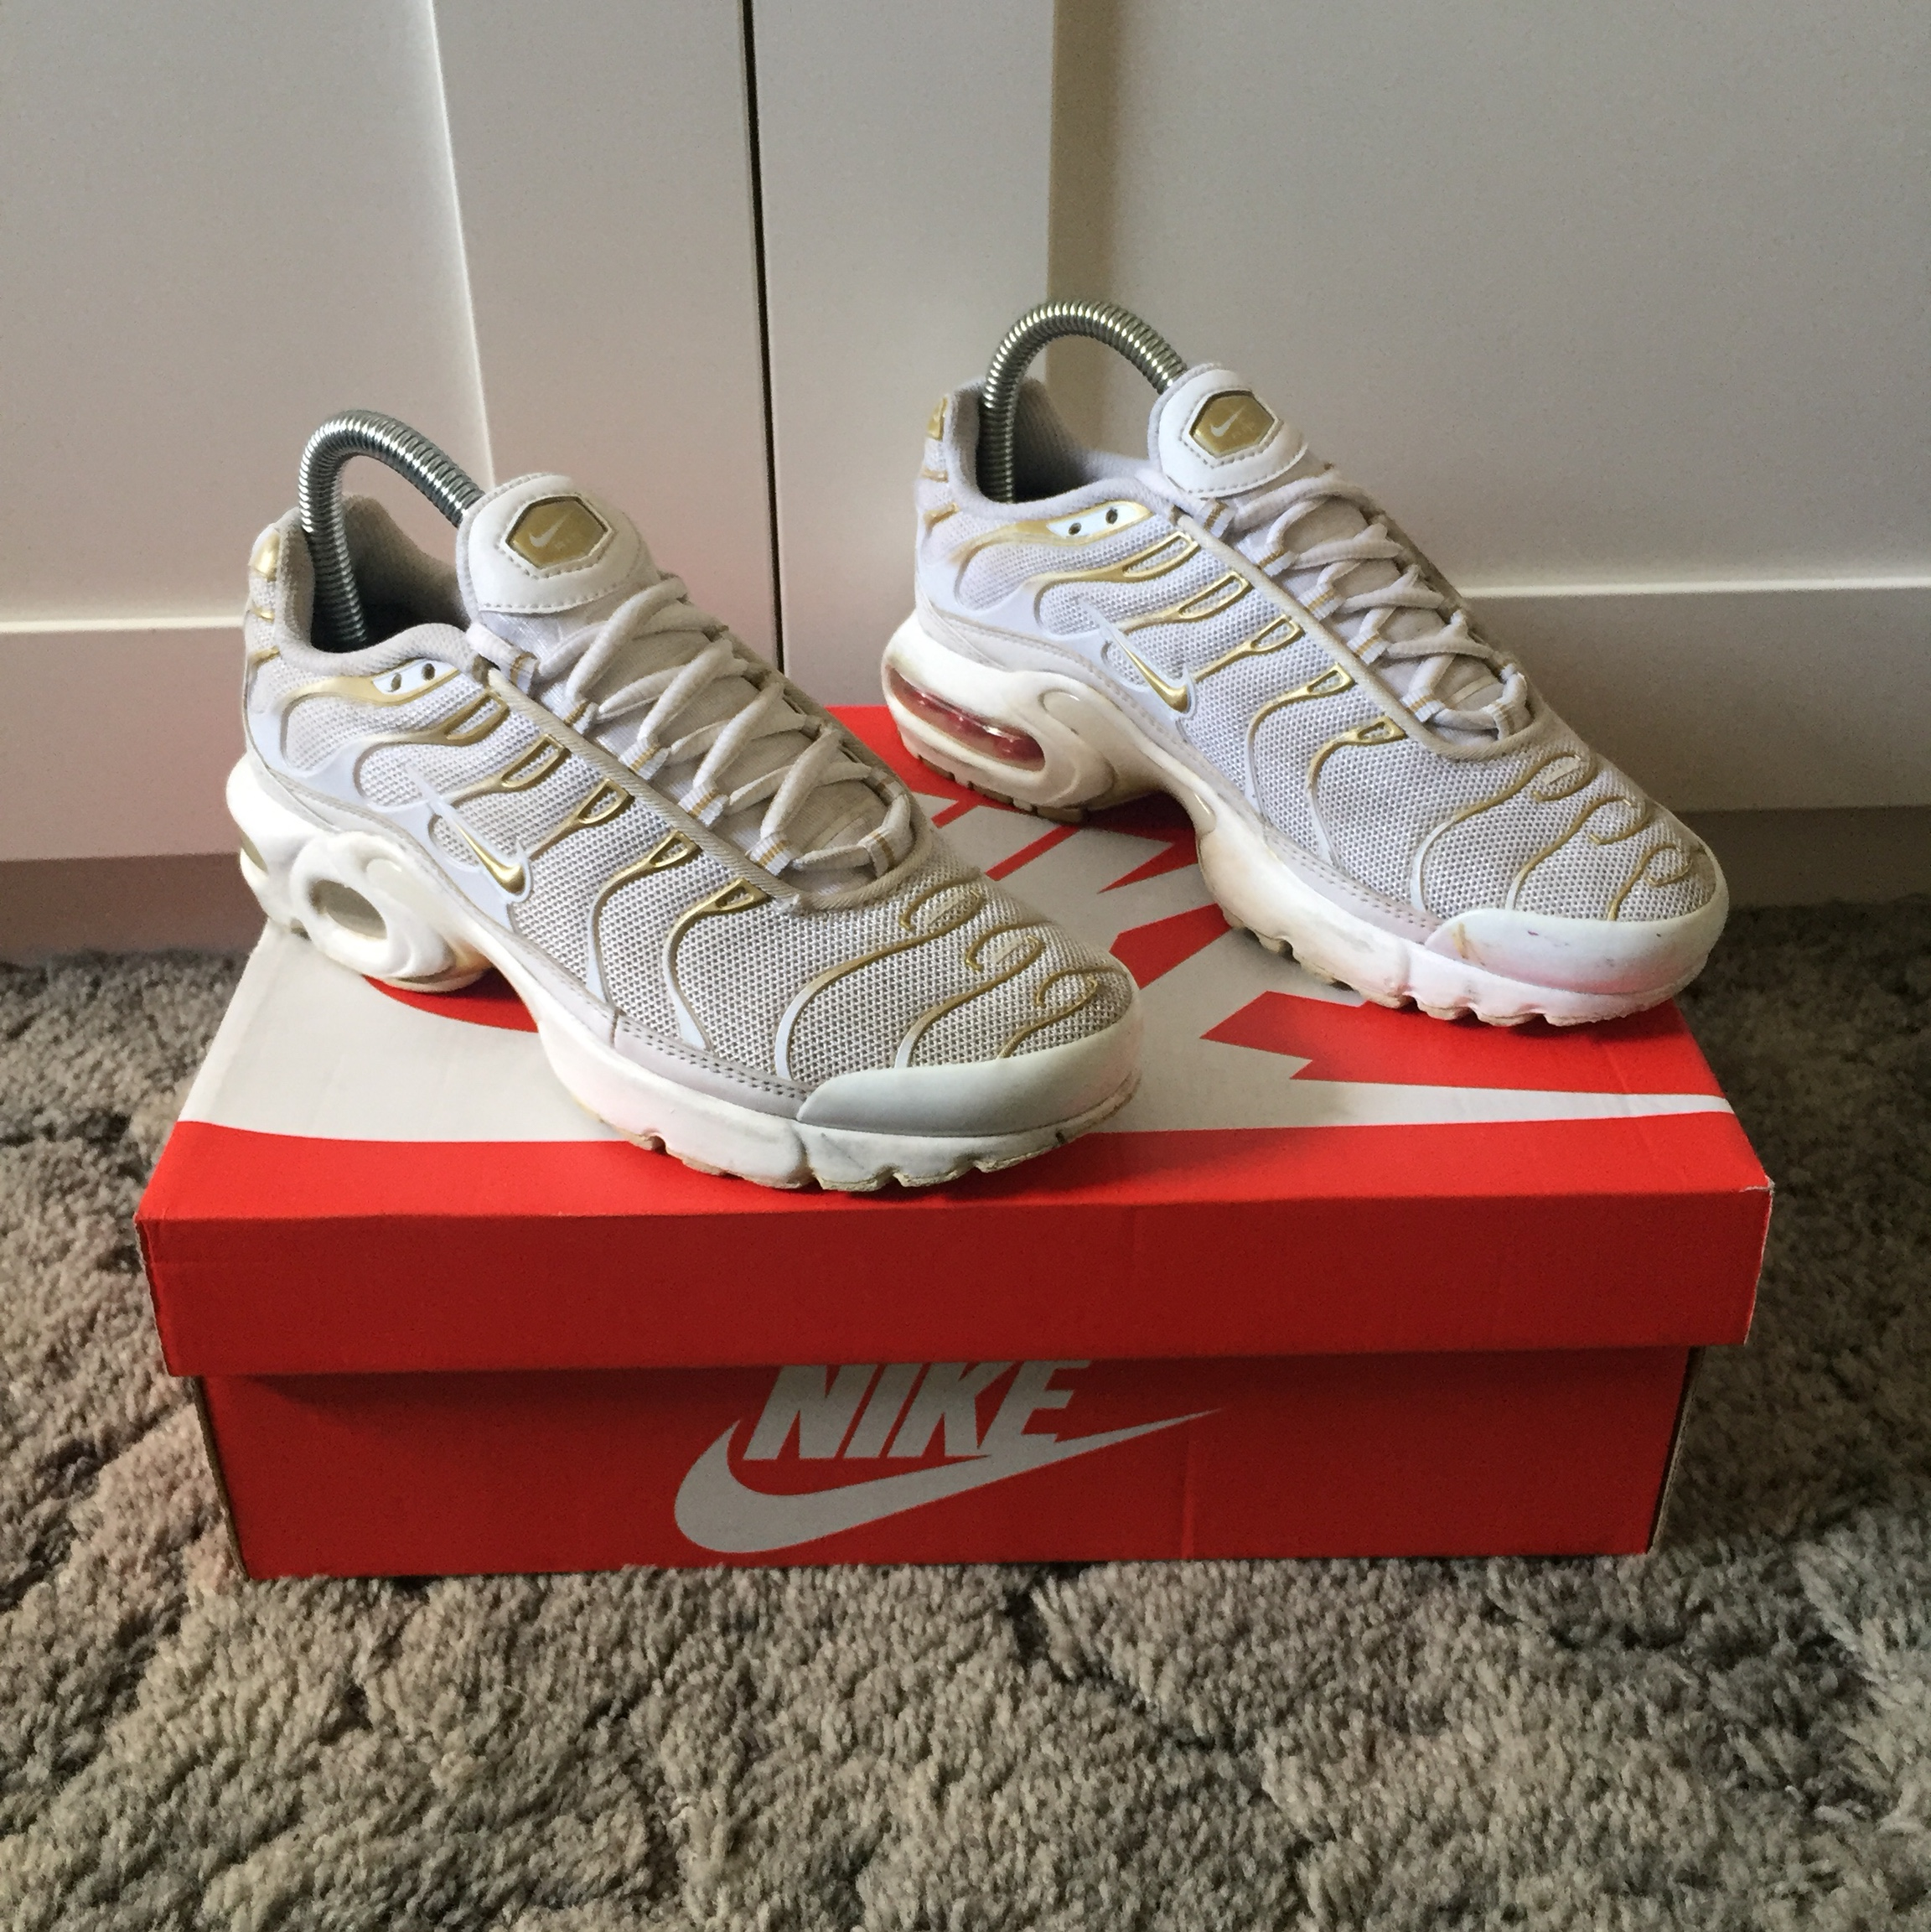 sneakers for cheap bb314 a713f Nike Tn. White/Gold. Dirt/scuffs on midsole and... - Depop